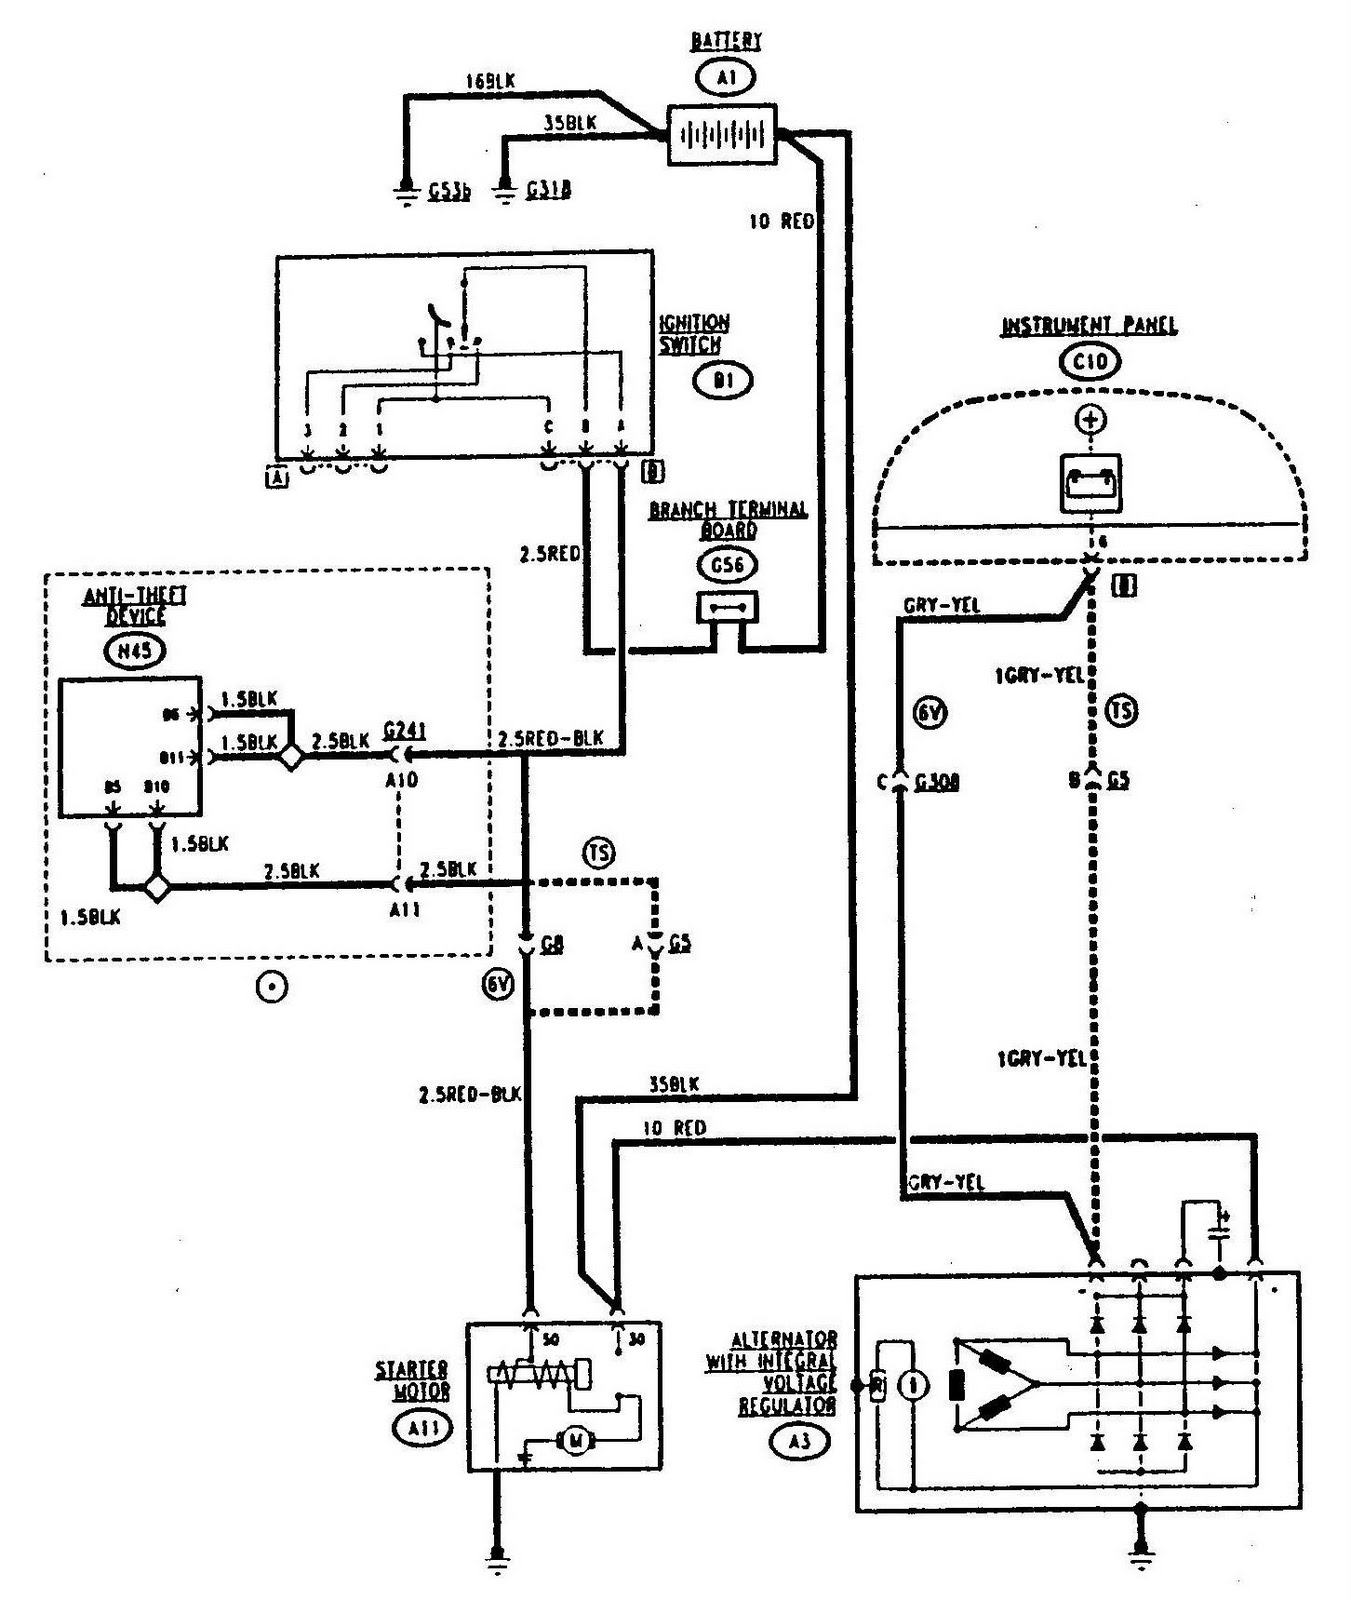 Alfa romeo 155 starting and charging circuit diagram wiringdiagrams rh 1800wiringdiagrams blogspot wiring 225 diagram